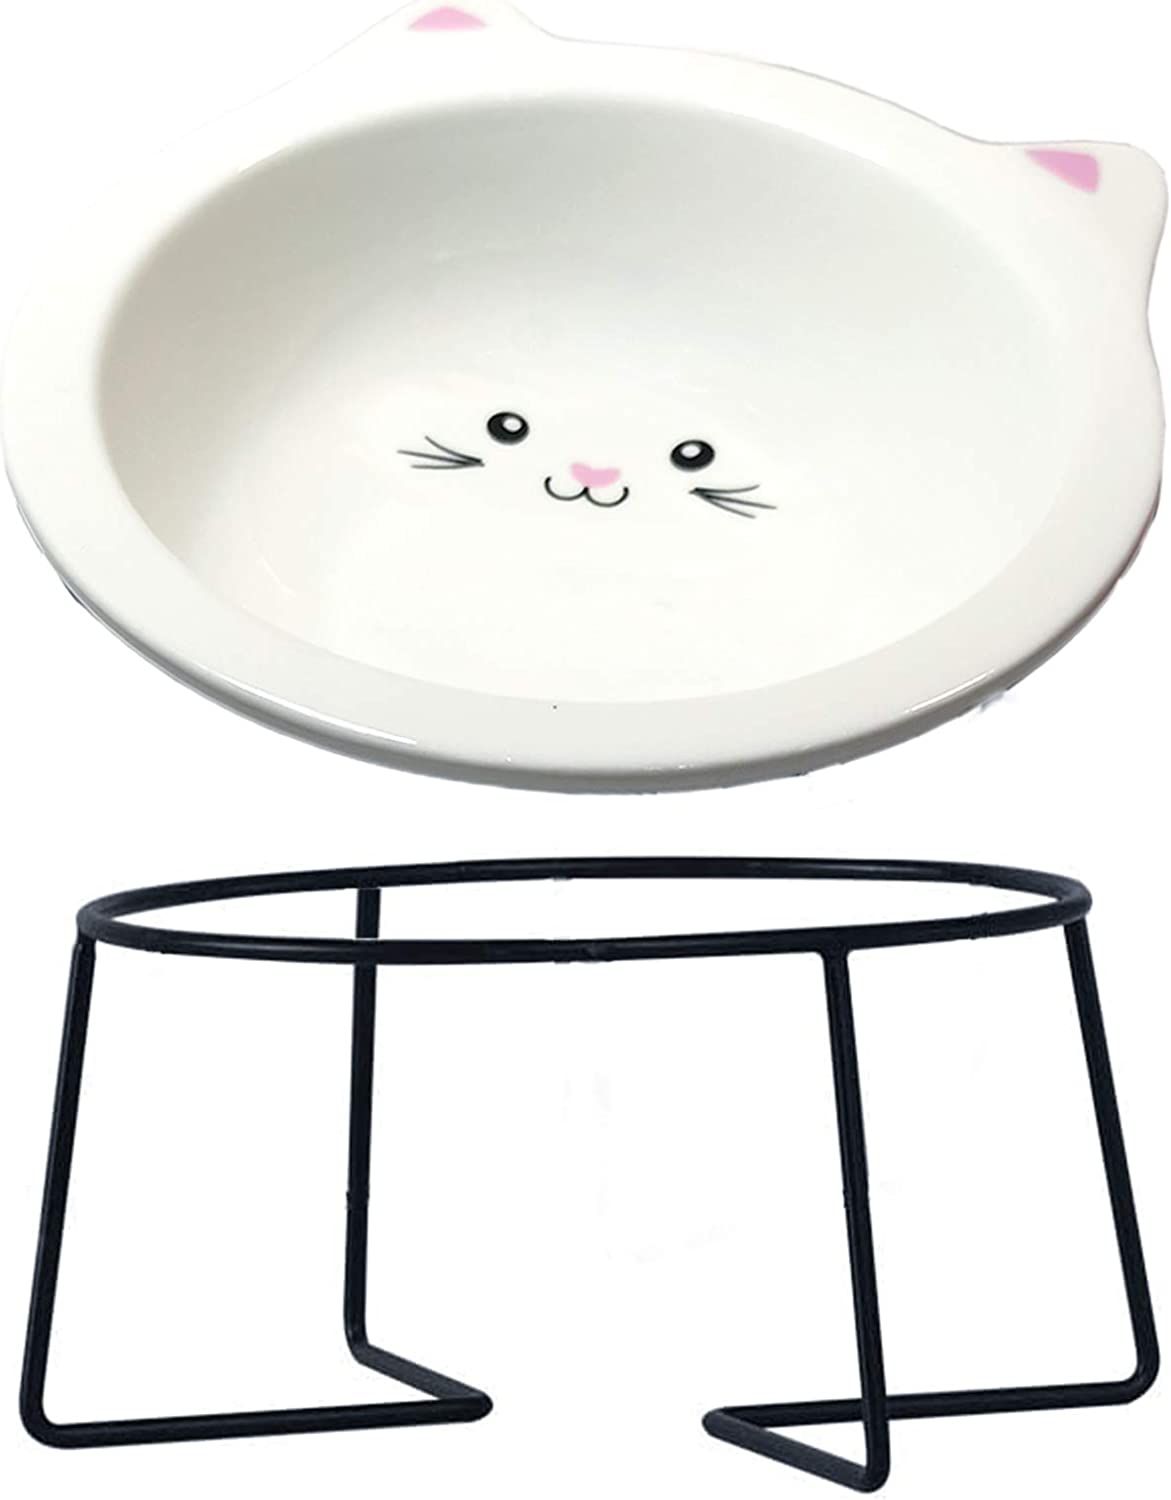 Cat Bowl,Raised Cat Food Bowls Anti Vomiting,Tilted Elevated Cat Bowl,Ceramic Pet Food Bowl for Flat-Faced Cats,Small Dogs,Protect Pet's Spine,Dishwasher Safe